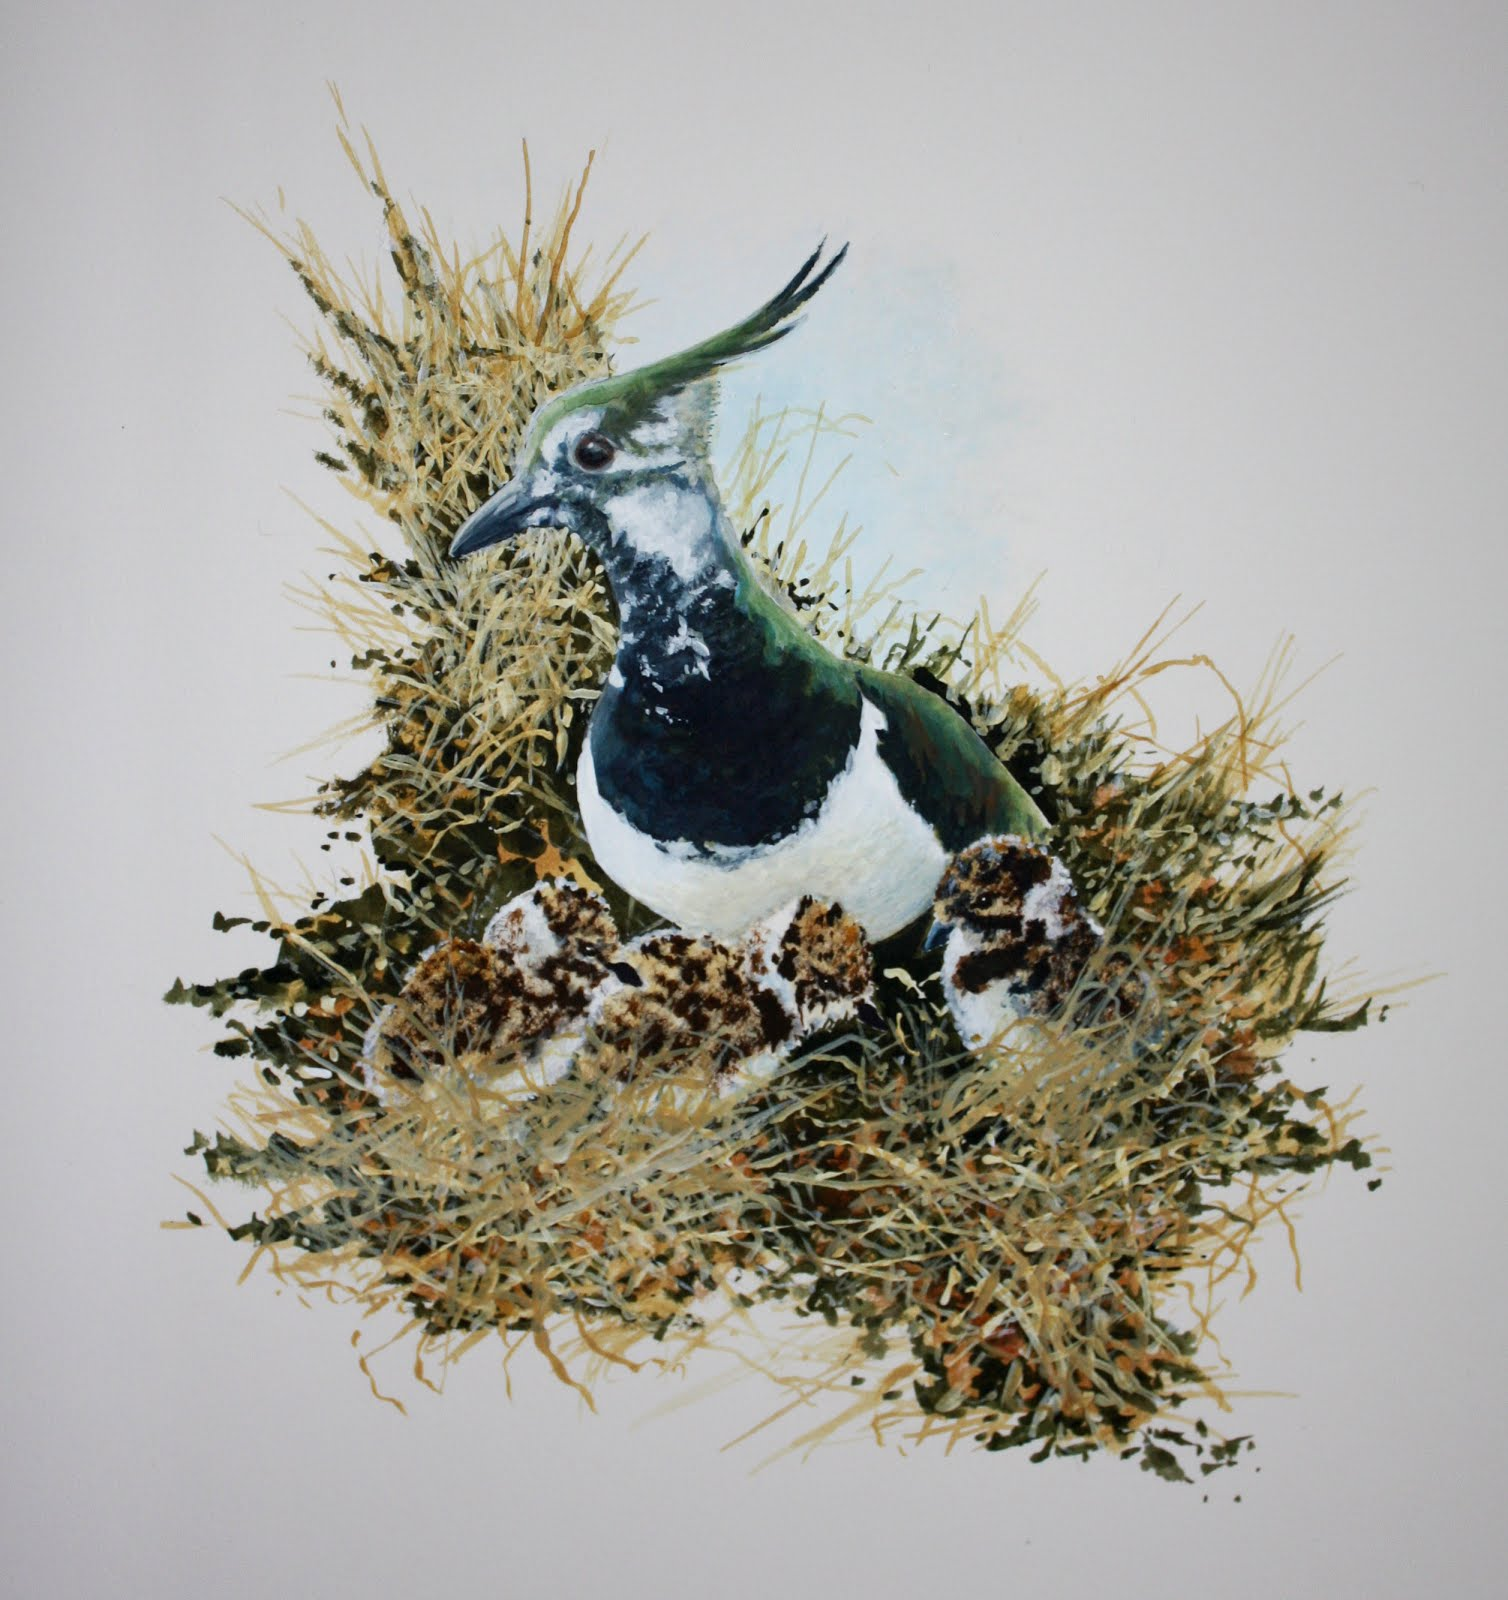 Lapwing and chicks